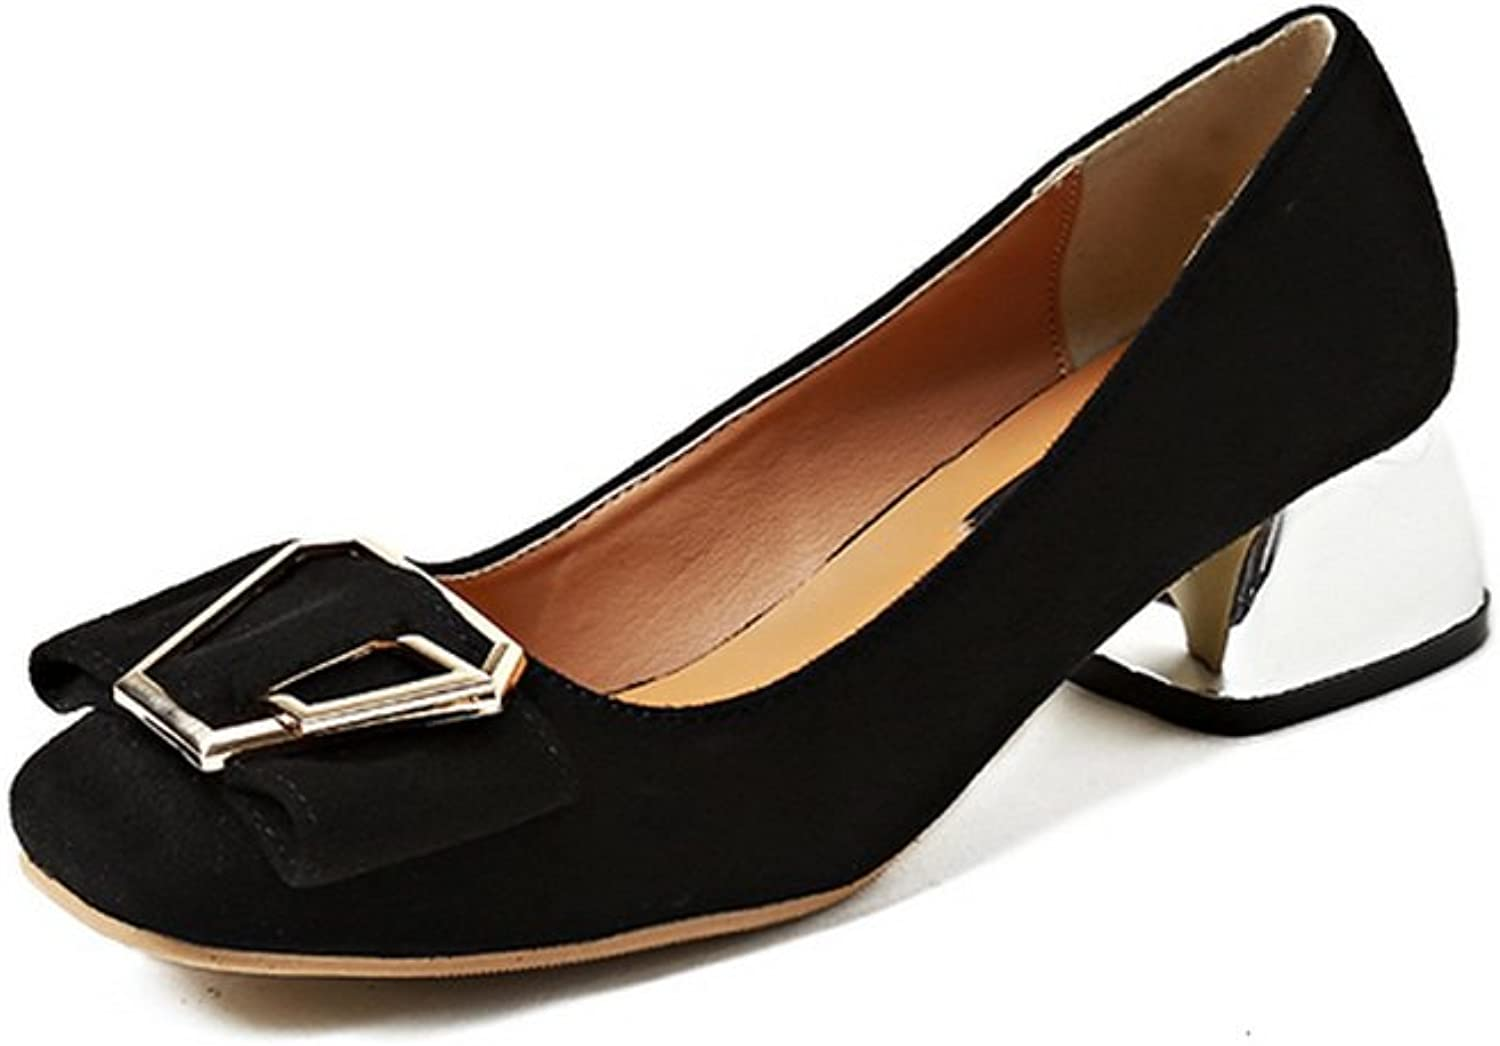 1TO9 Womens Buckle Chunky Heels Square-Toe Black Suede Pumps shoes - 5 B(M) US